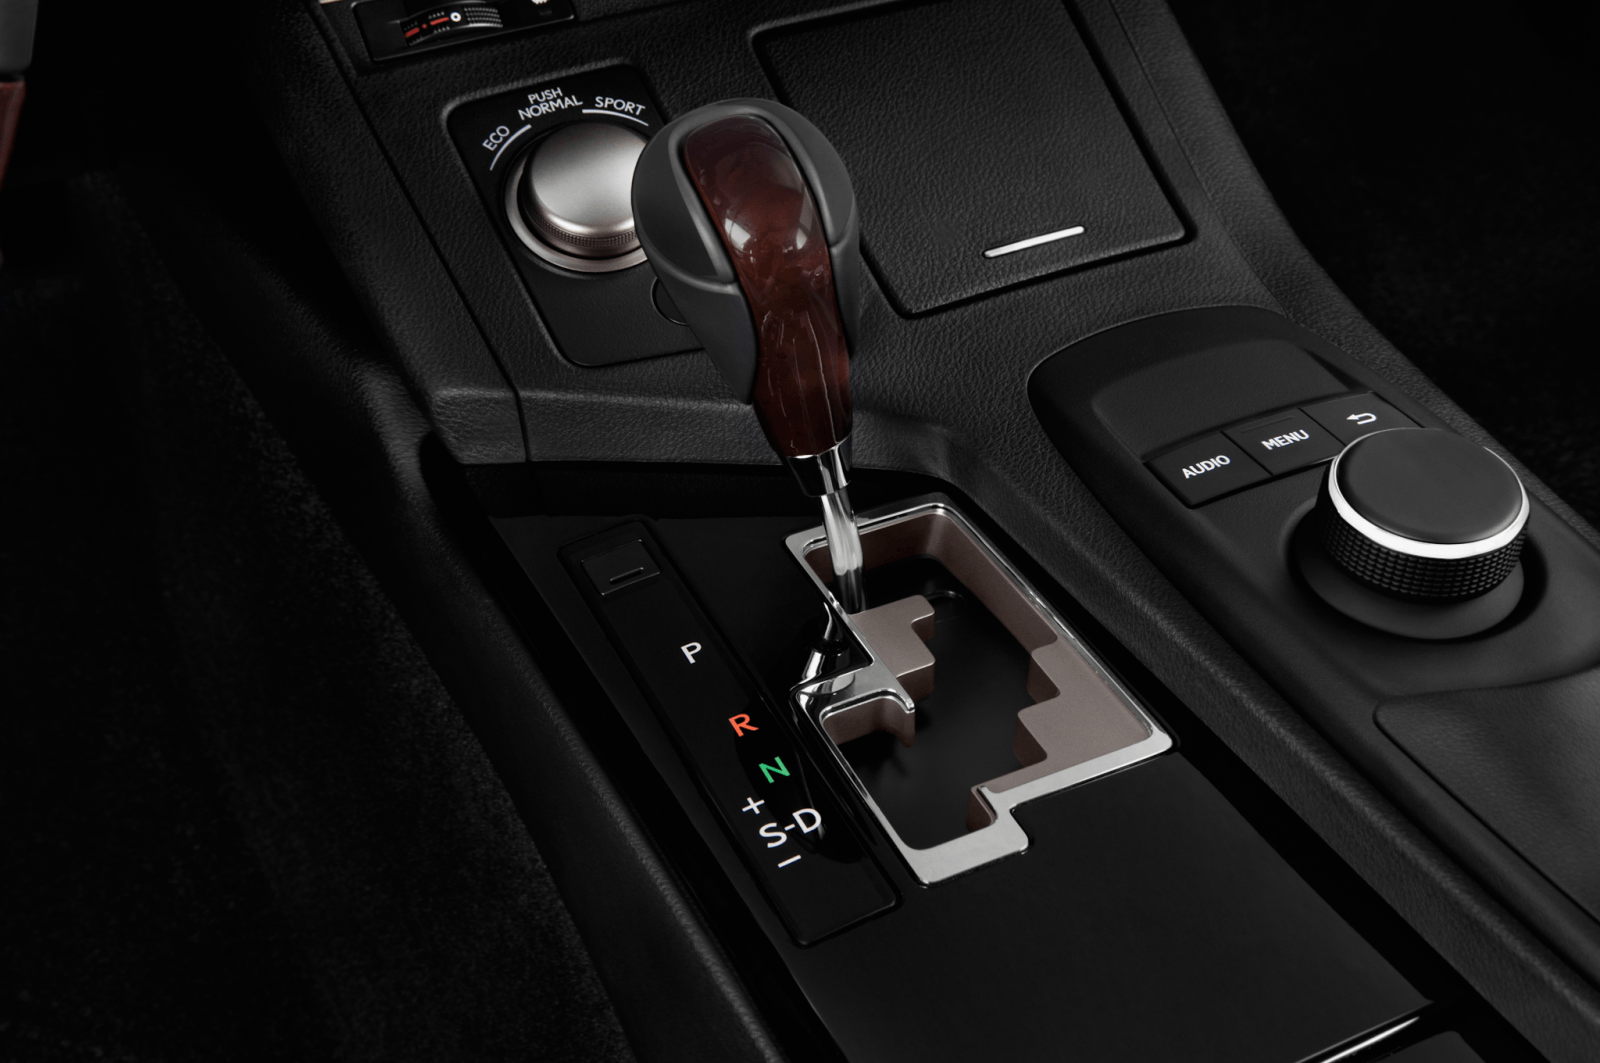 automatic transmission won't shift into 3rd gear